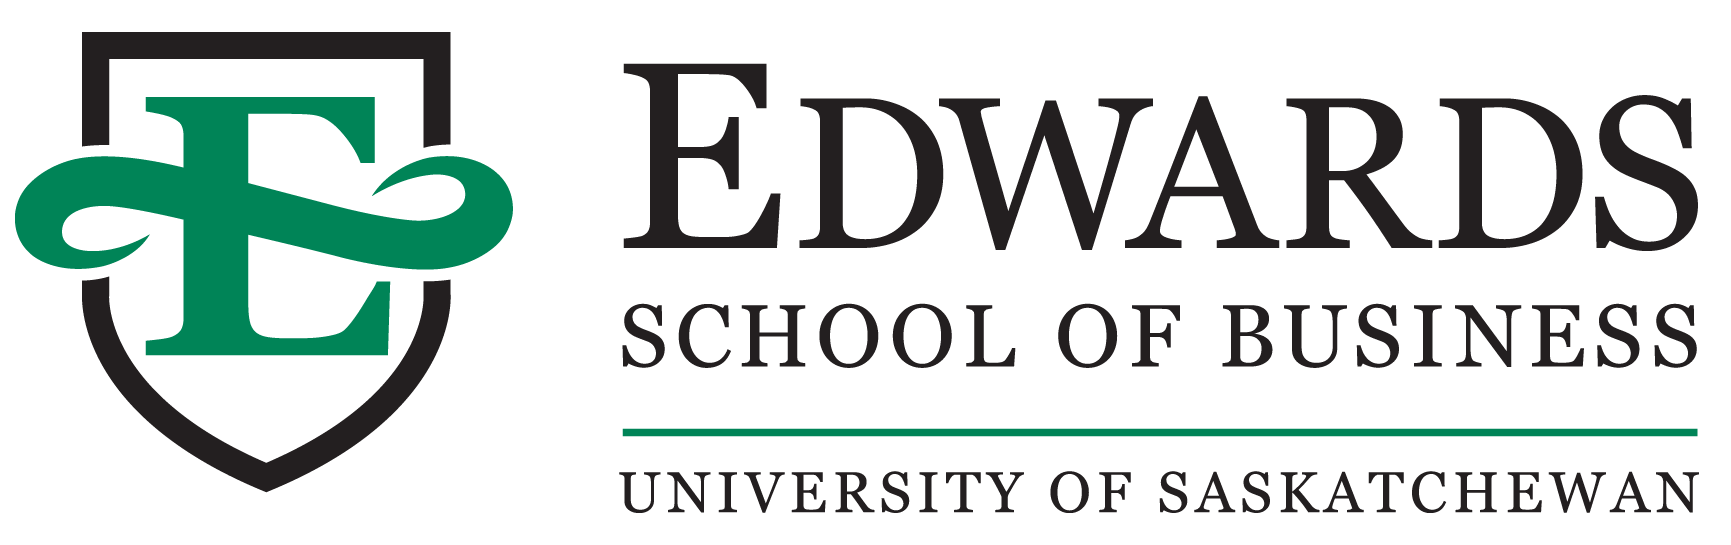 University of Saskatchewan - Edwards School of Business